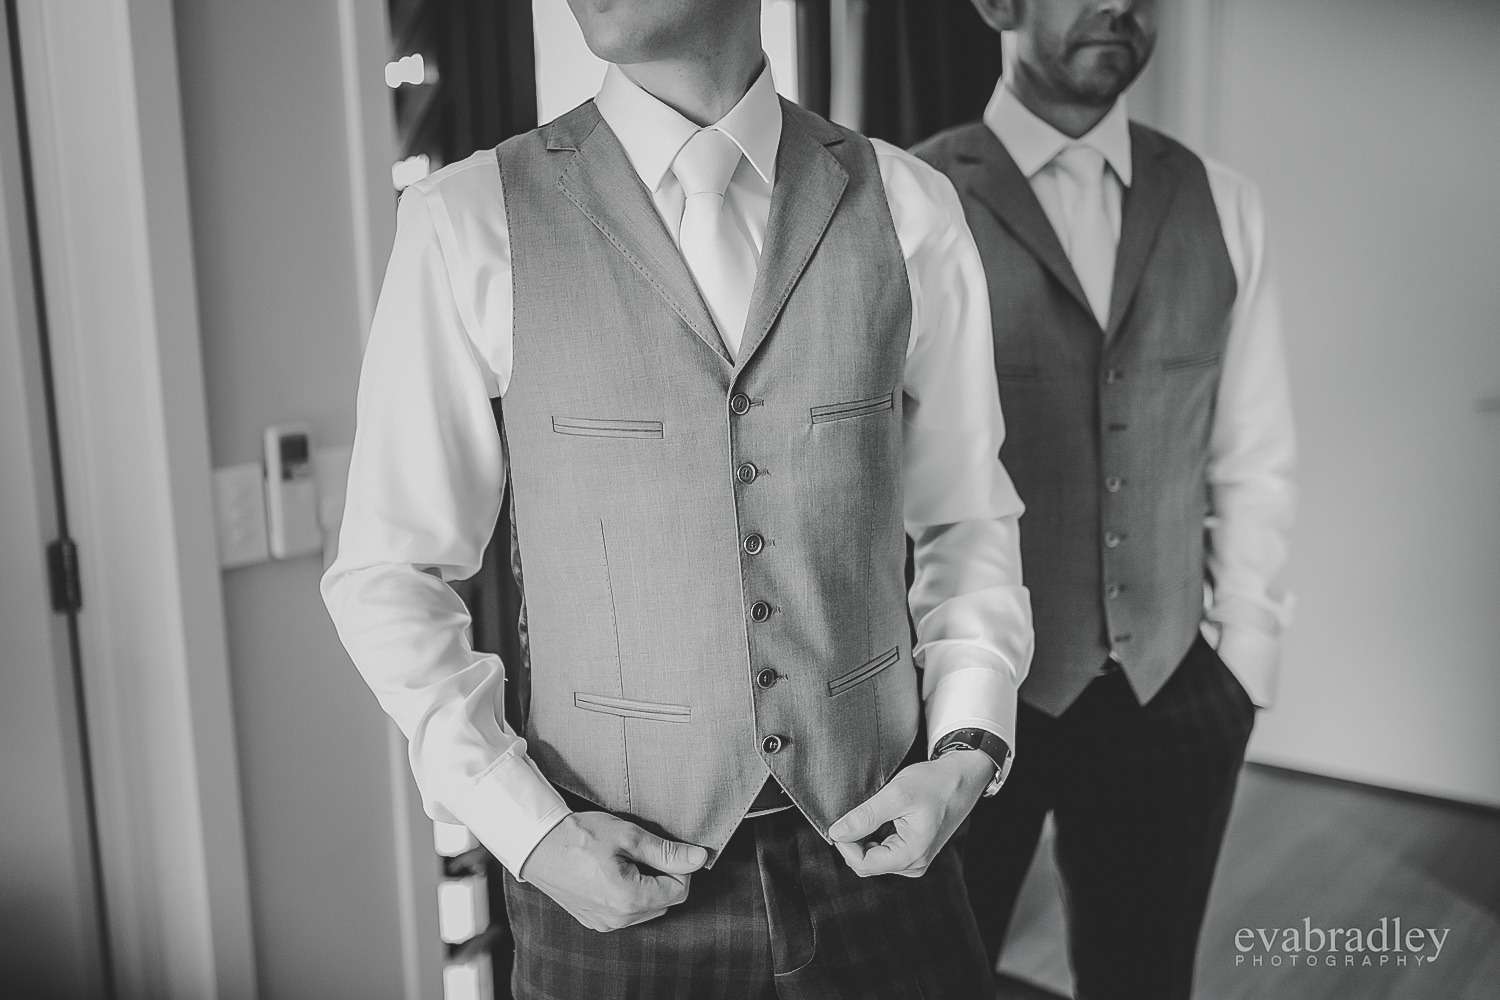 rembrant-groom-wedding-vest-nz